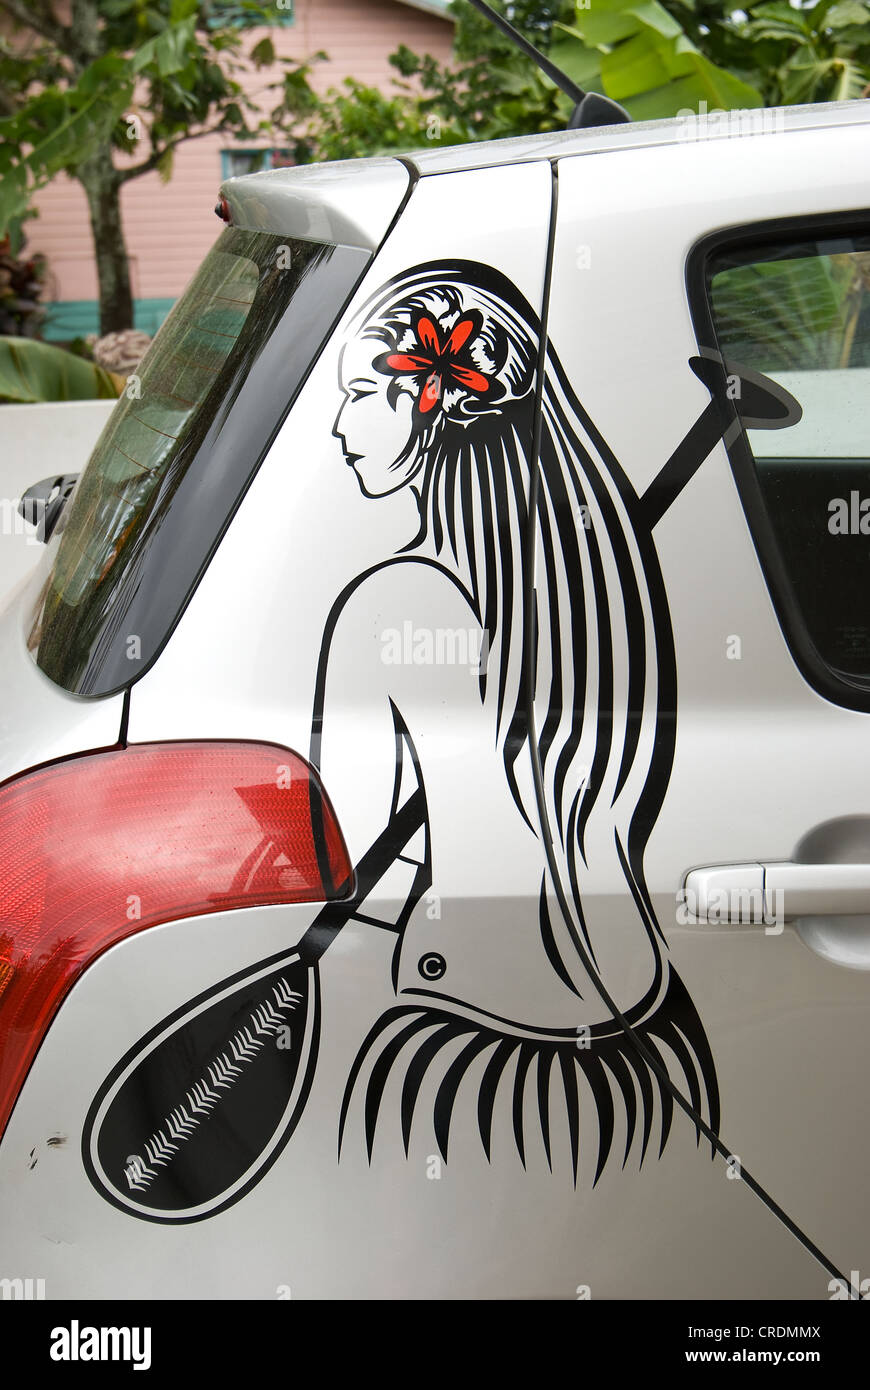 graphic art on car rarotonga cook islands - Stock Image